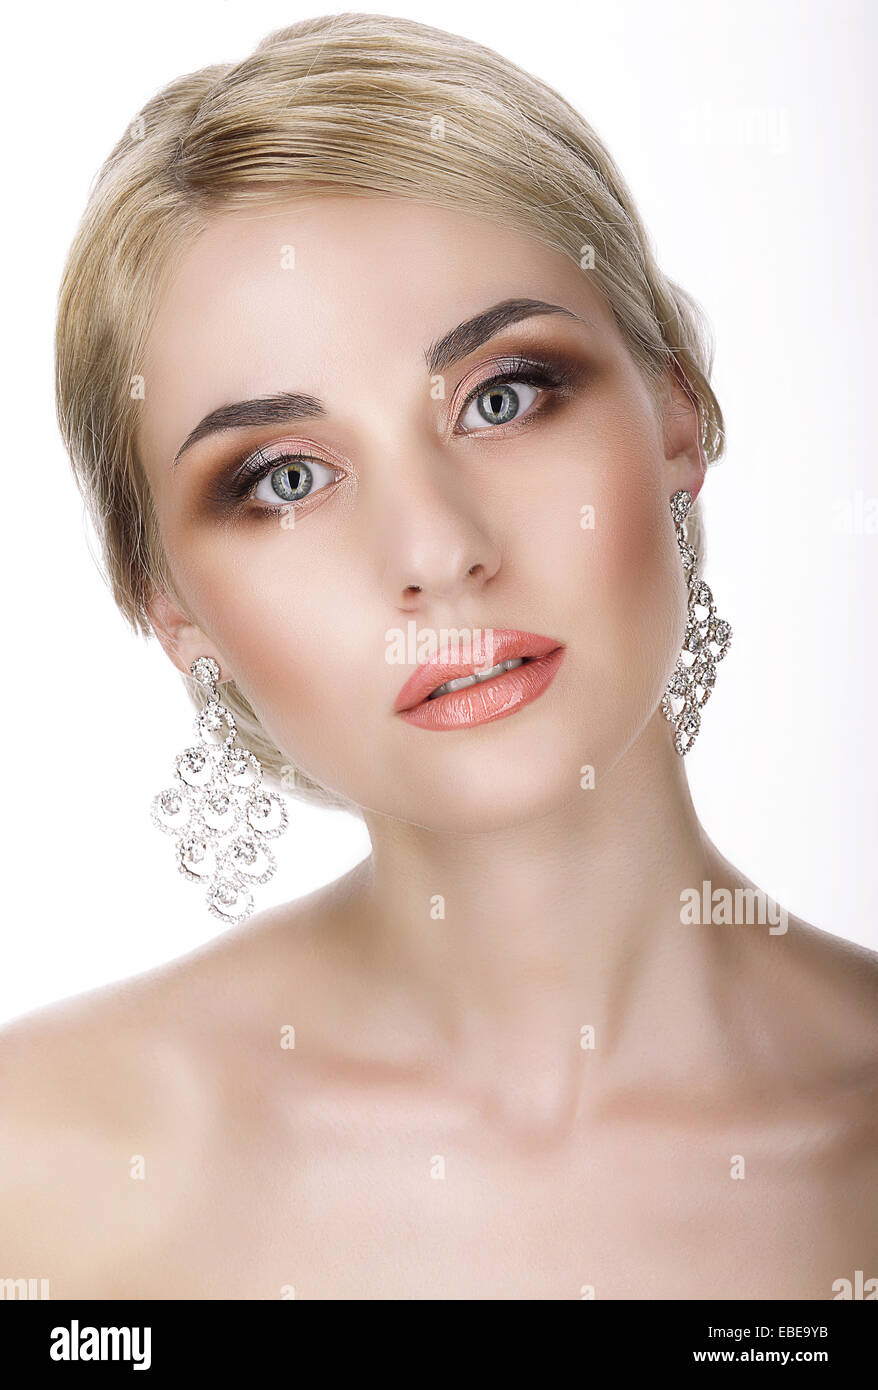 Magnetism. Portrait of Young Blond with Glossy Earrings - Stock Image